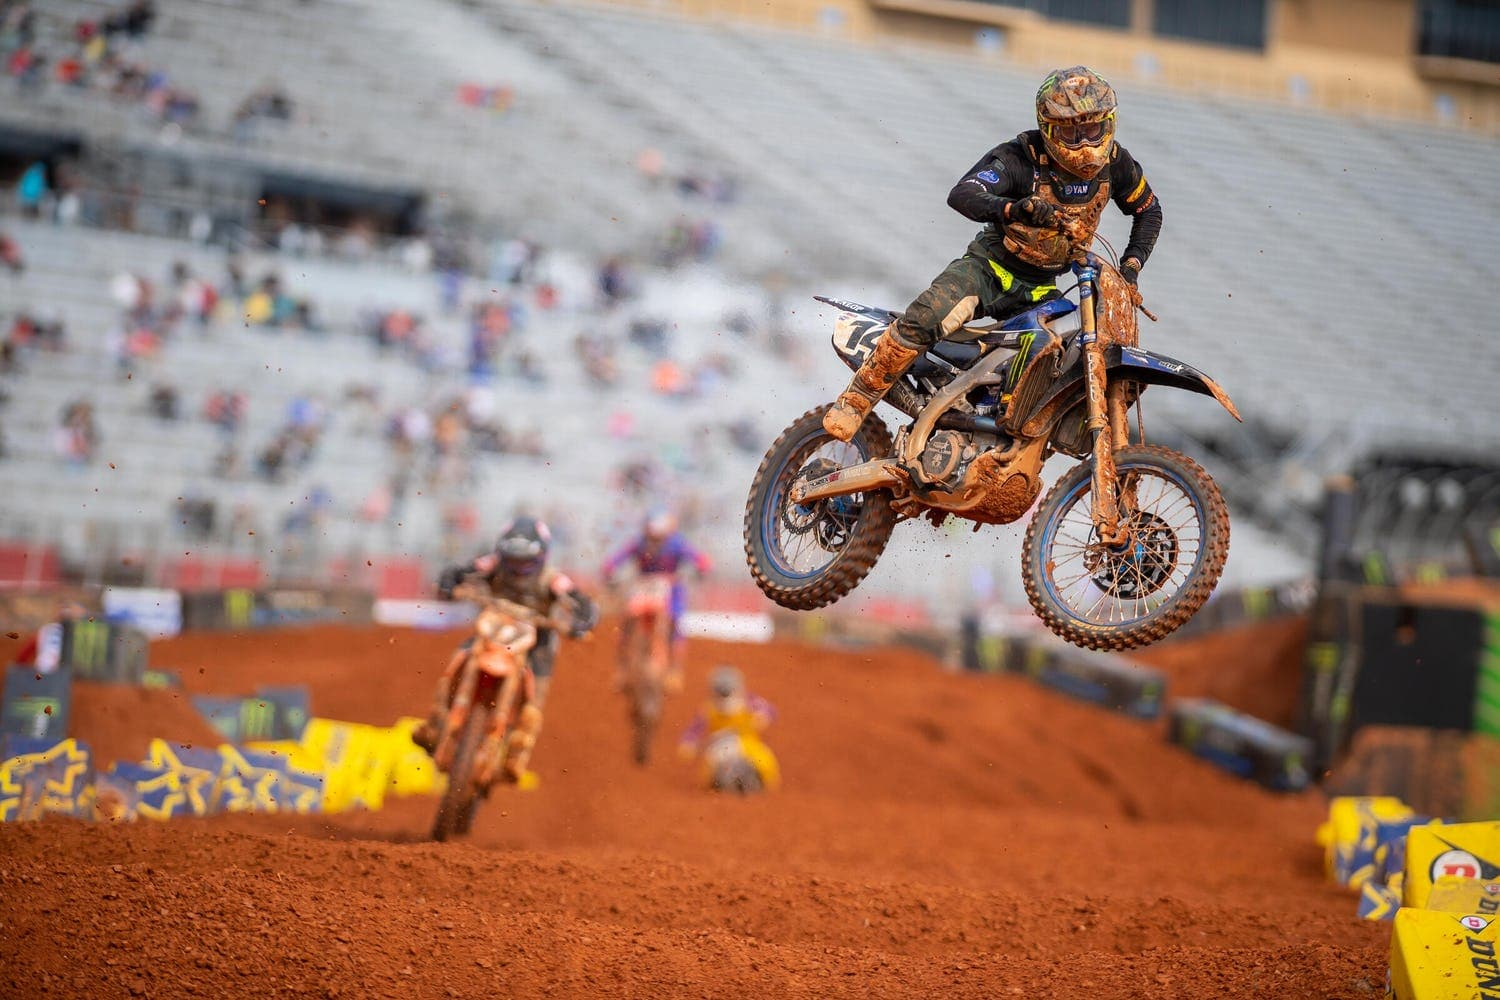 Dylan Ferrandis jumps through the whoops at Atlanta Motor Speedway. Photo by Align Media.